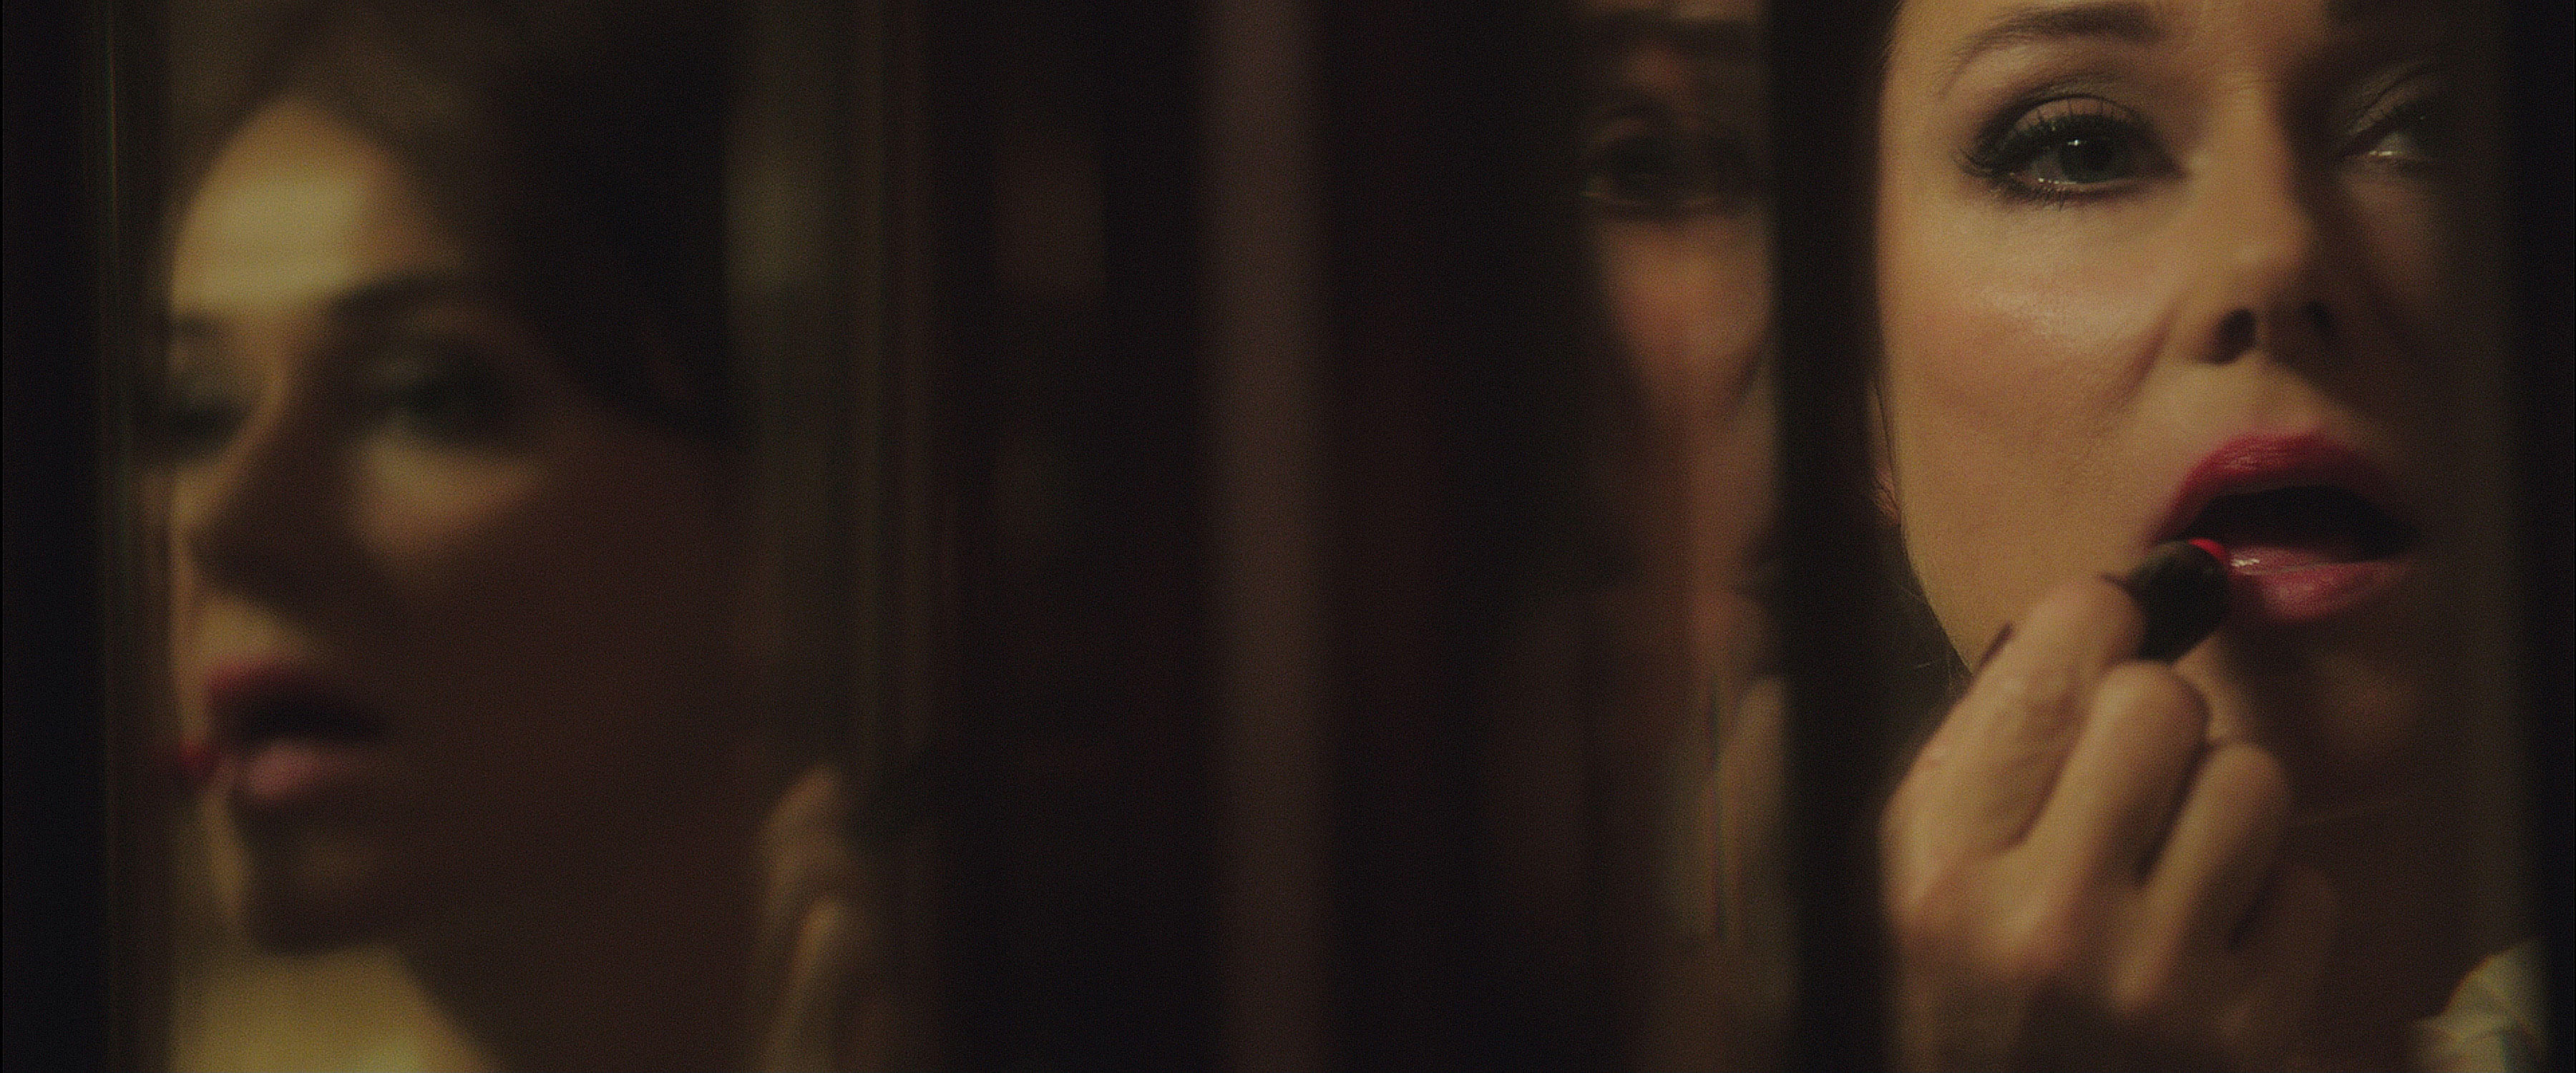 Check out the movie photos of 'The Duke of Burgundy'